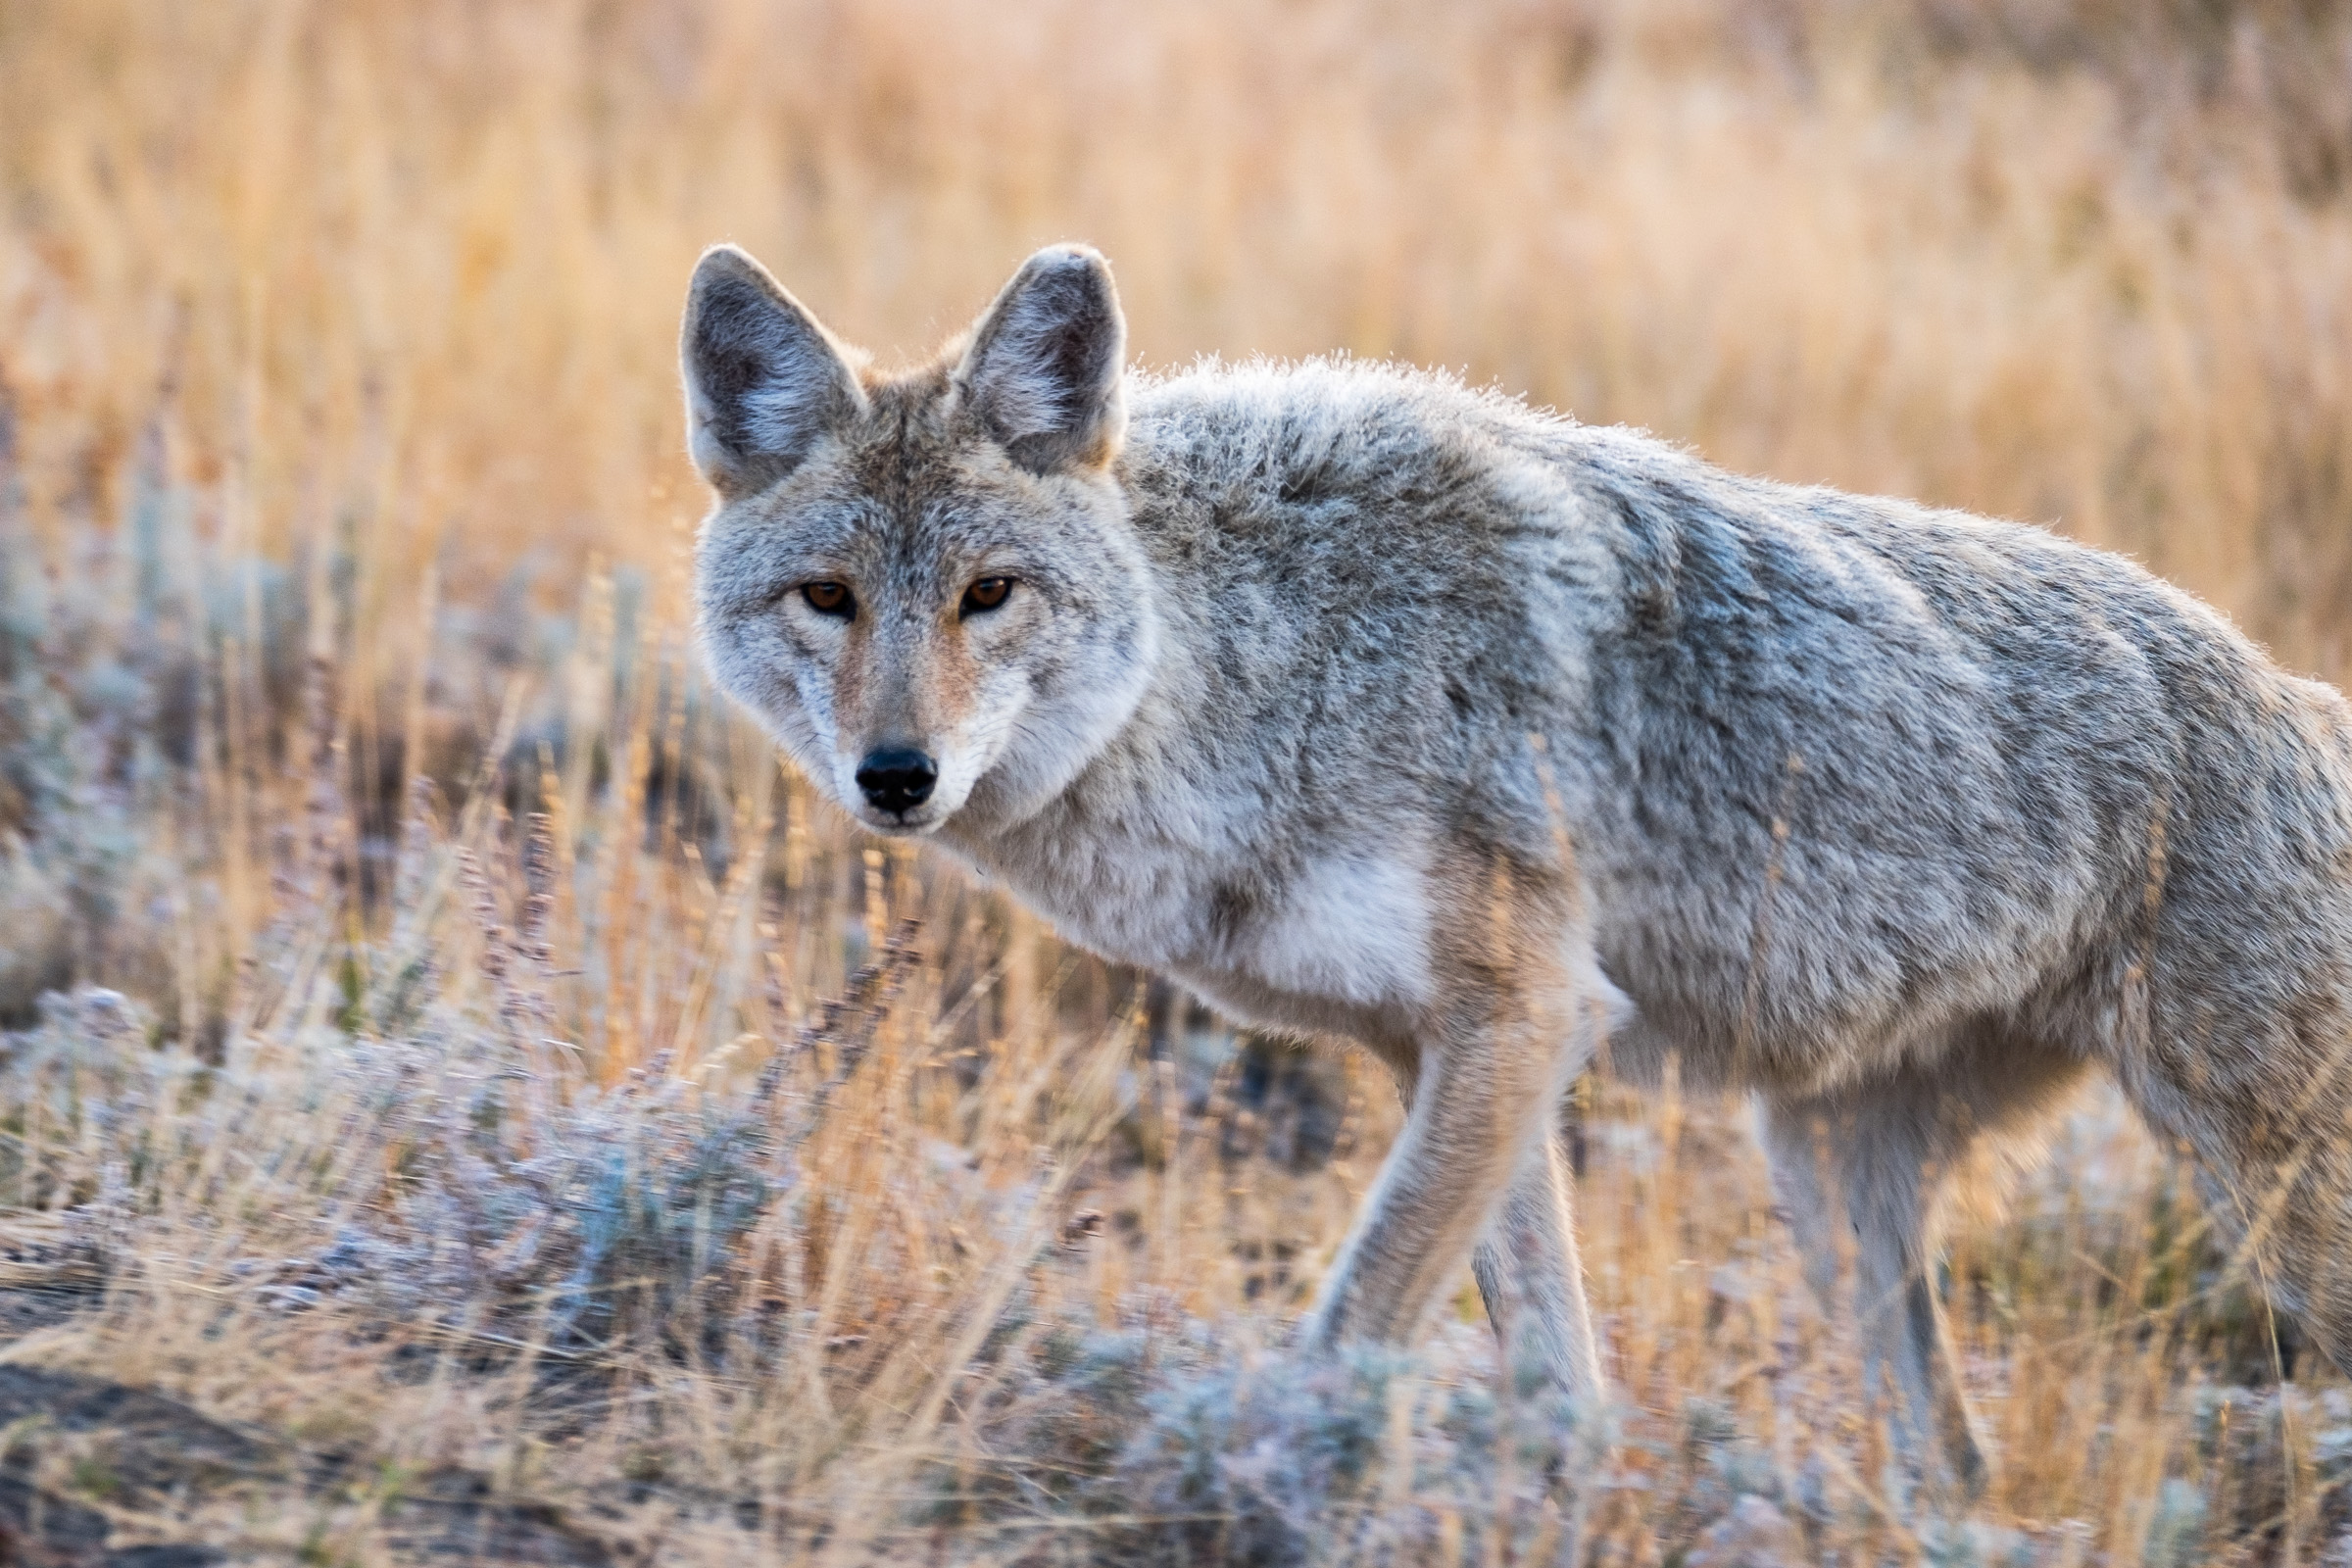 A coyote scanning the land for food in the early morning hours.